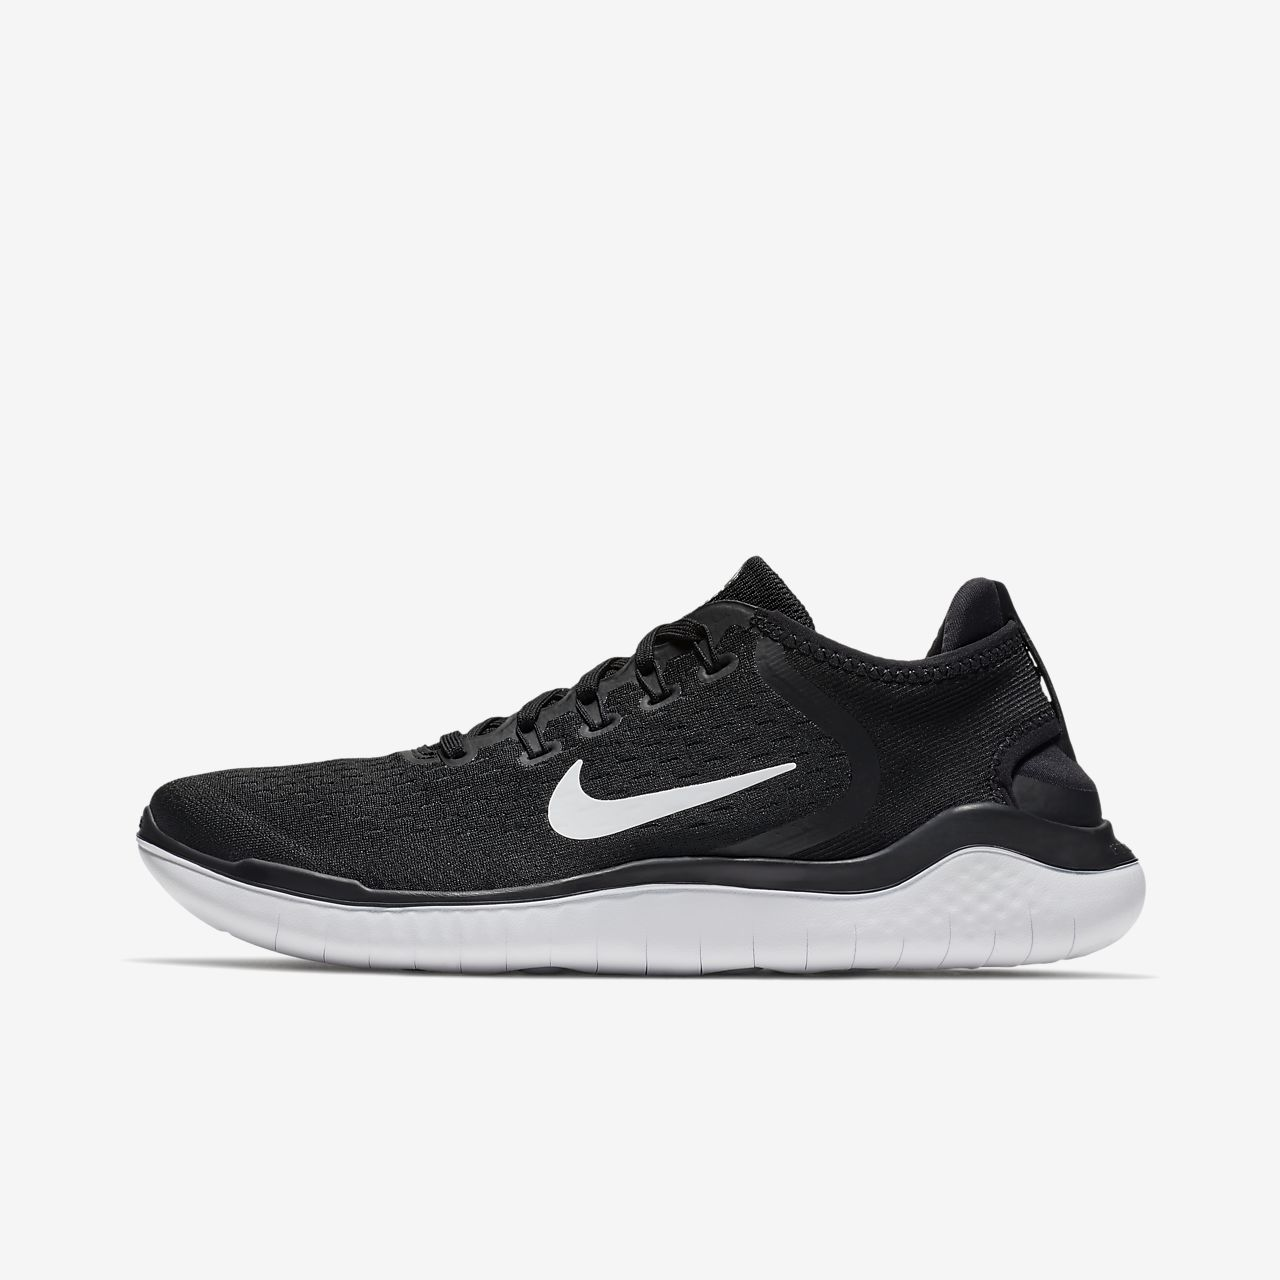 info for c5d58 f5b35 Men s Running Shoe. Nike Free RN 2018